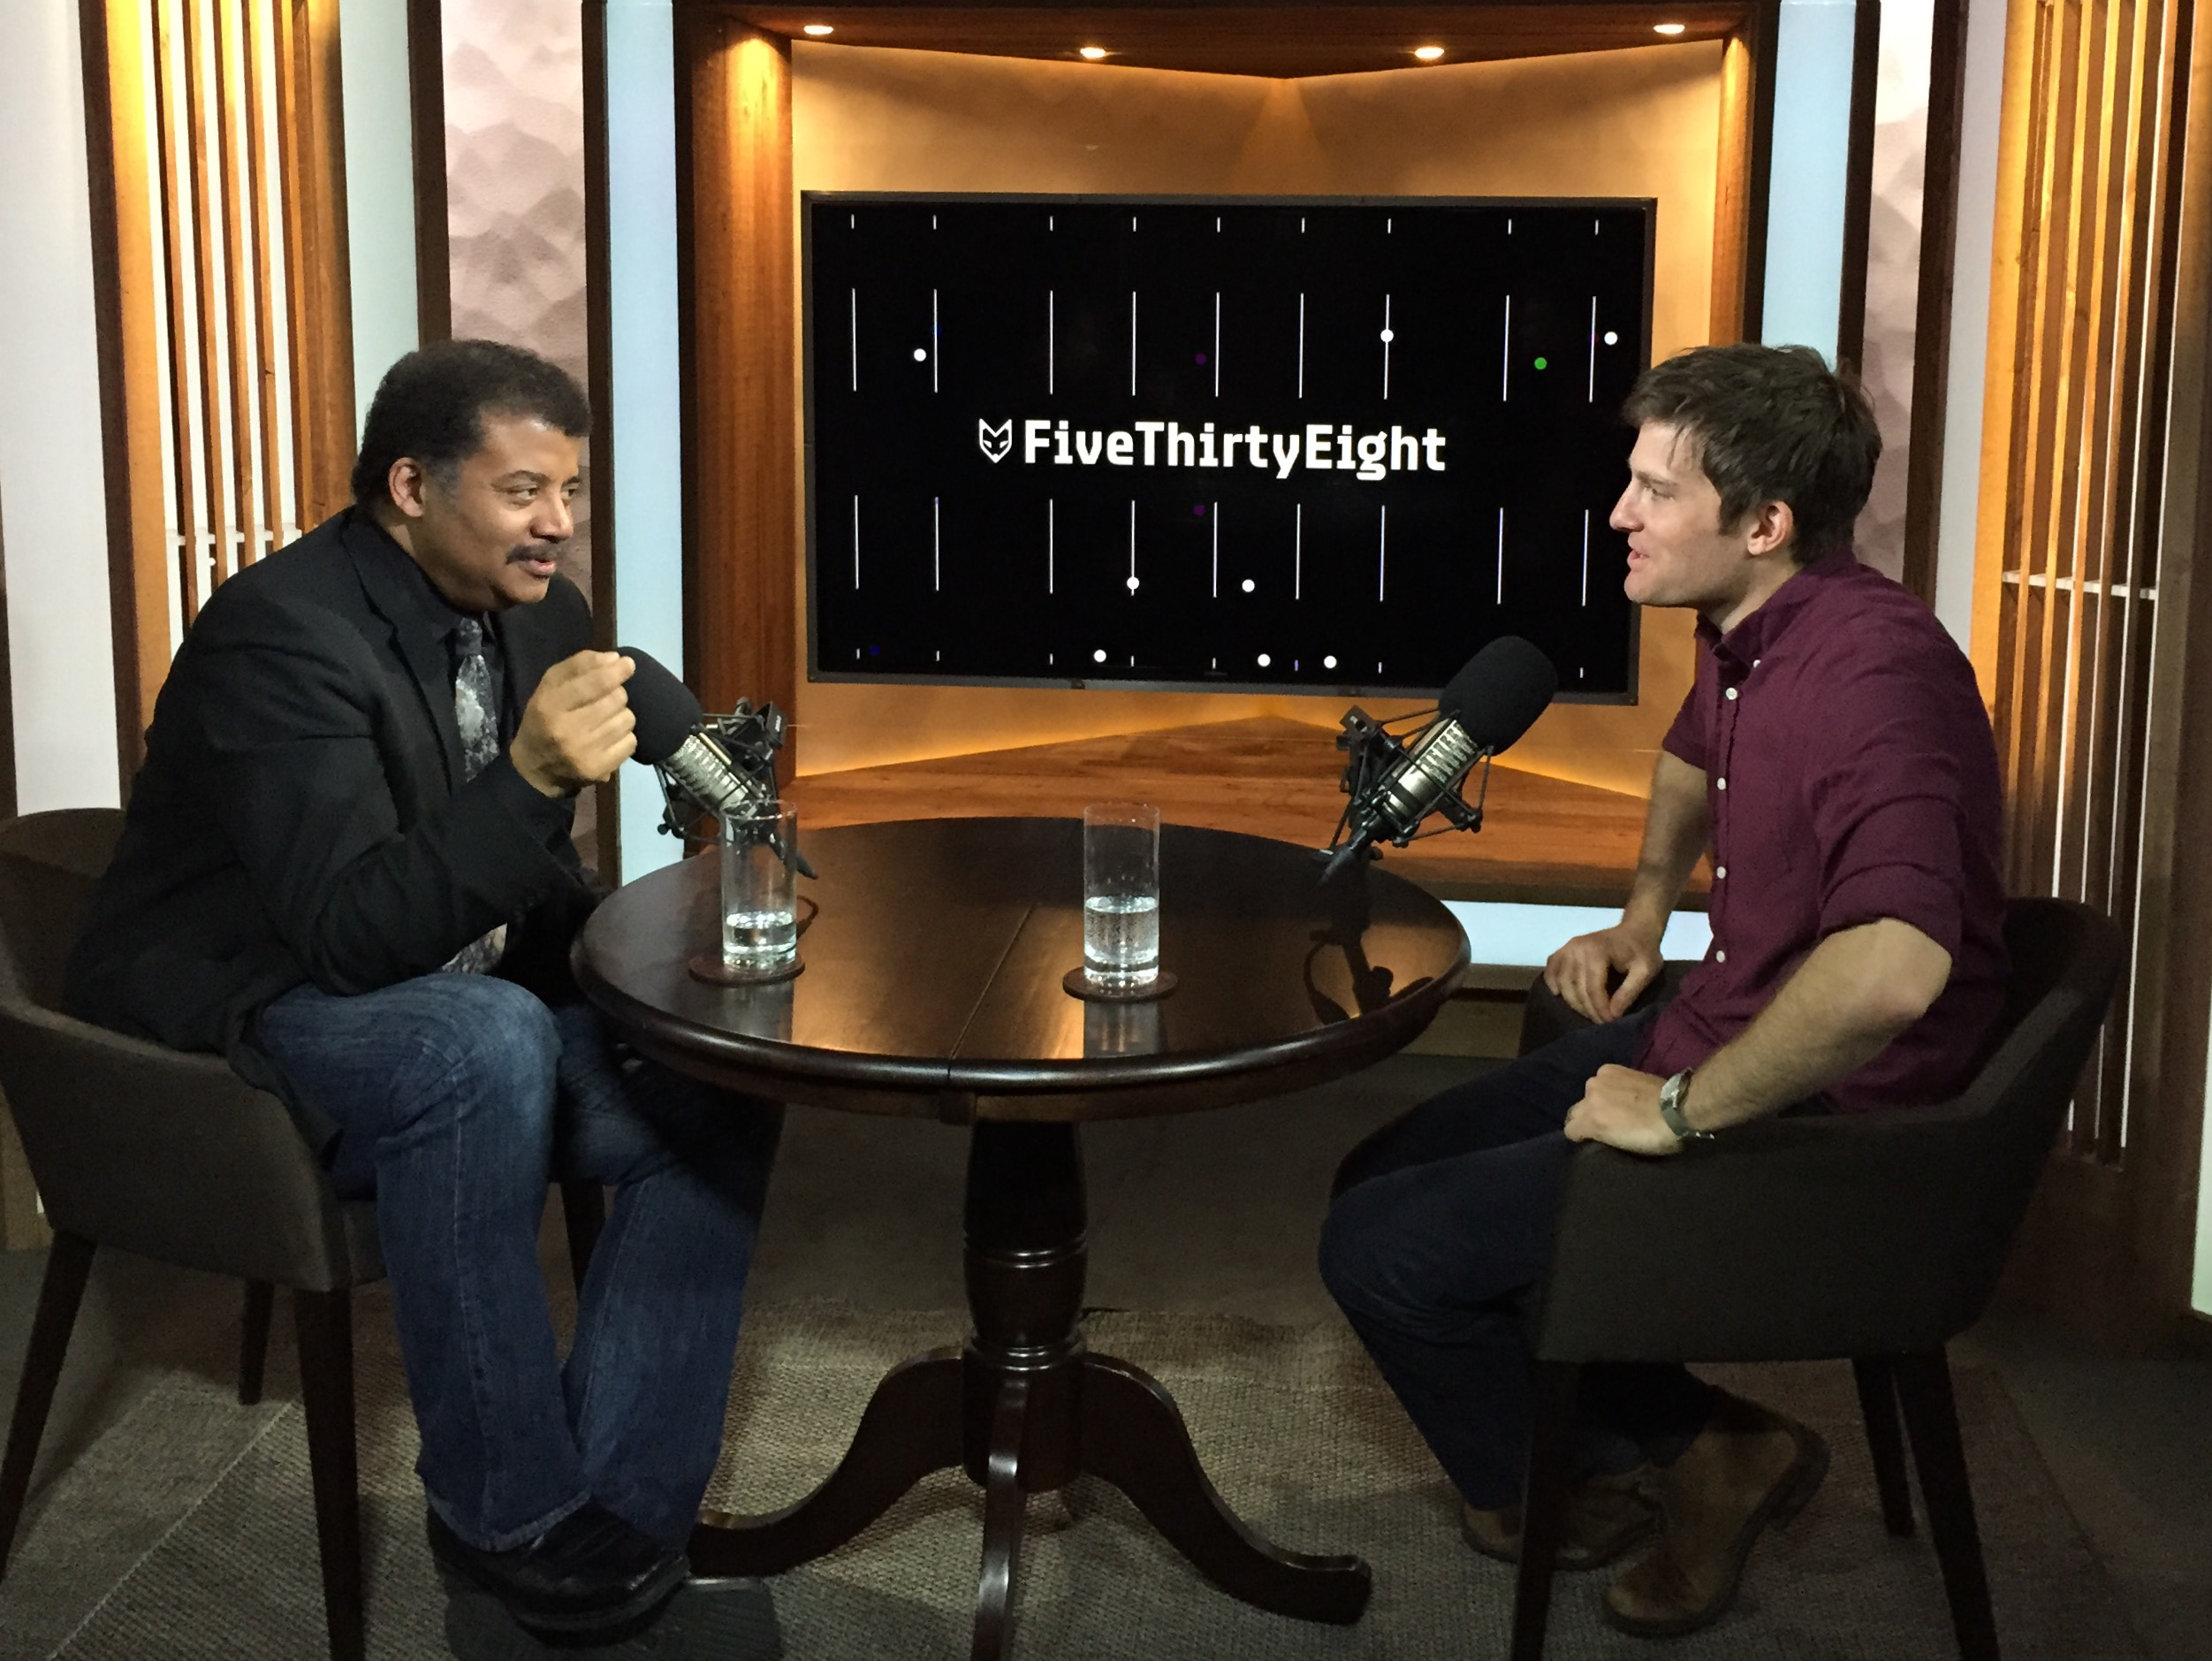 Neil deGrasse Tyson and Jody Avirgan in the FiveThirtyEight studios.